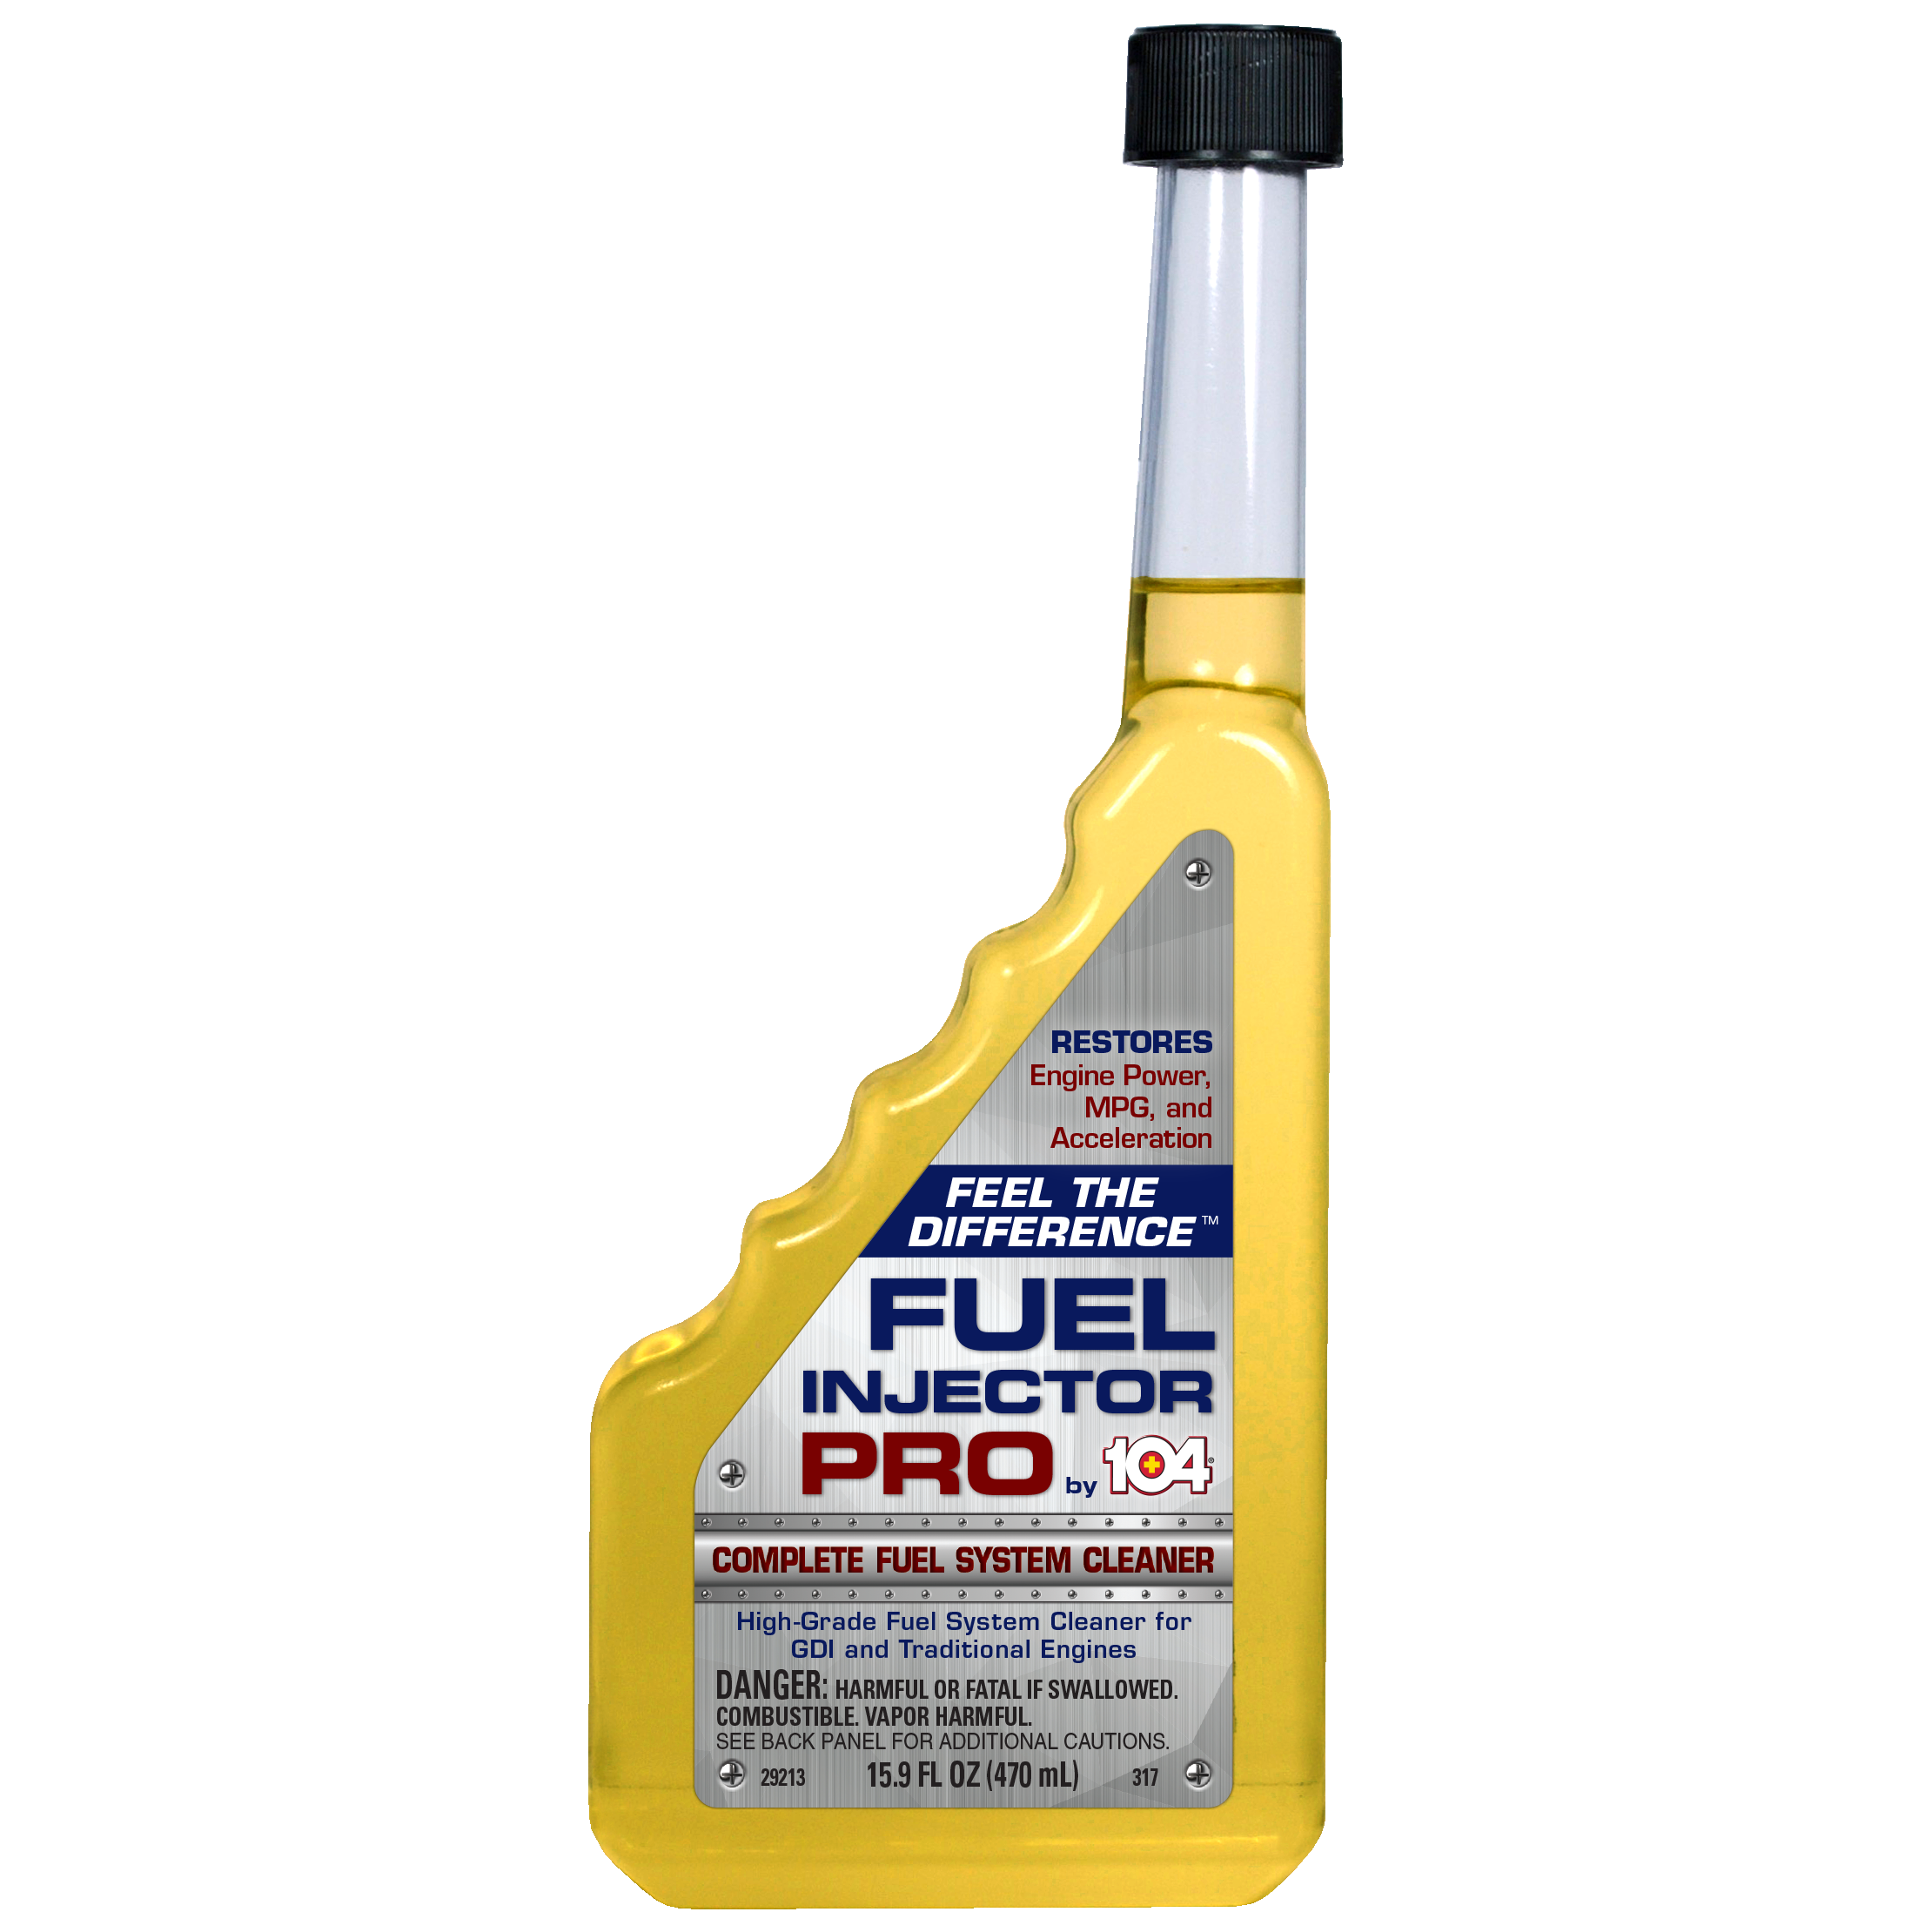 104+ Fuel Injector Pro Fuel System Cleaner